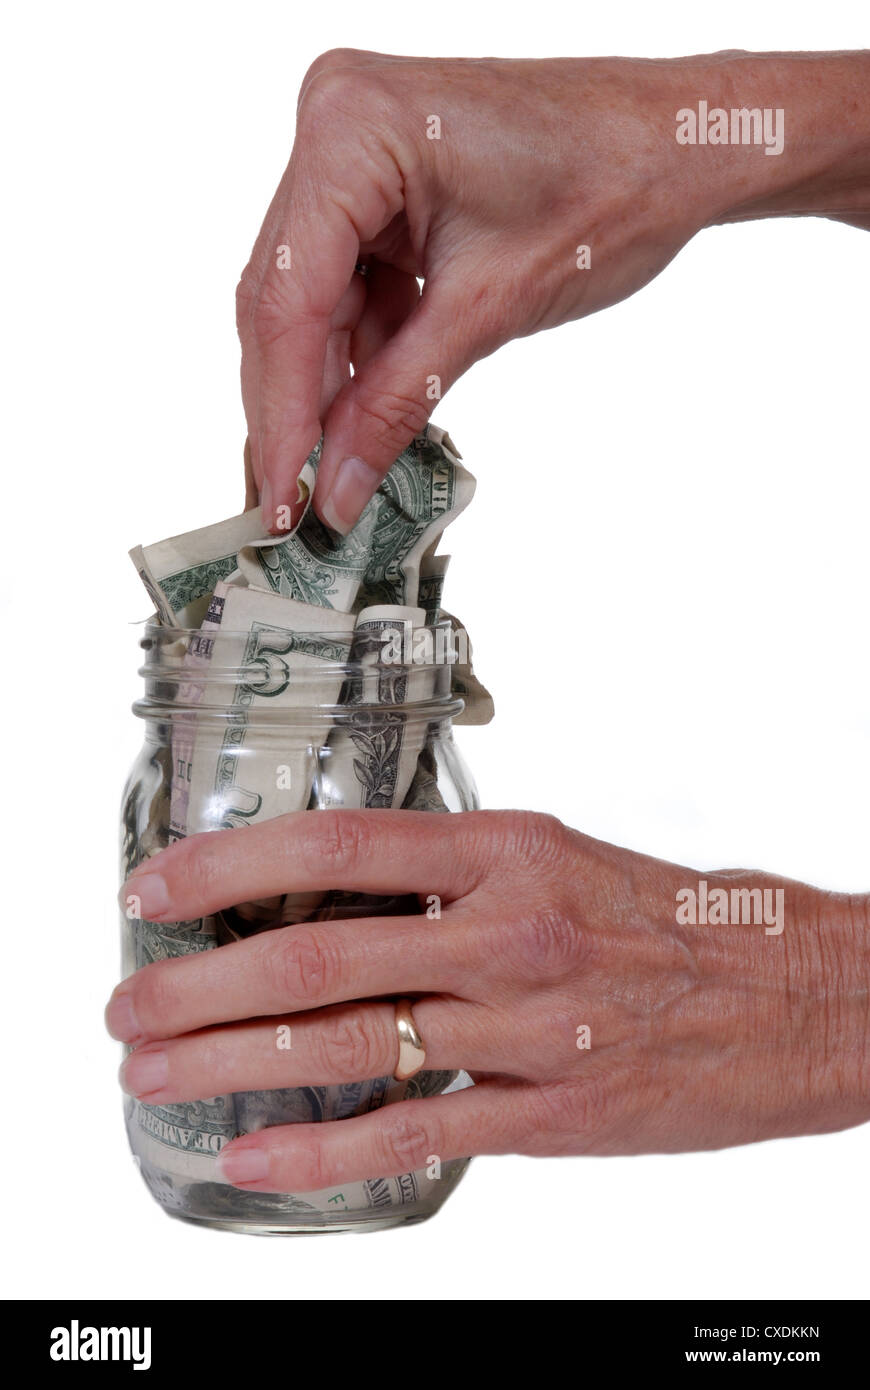 Female hand taking dollar bills out of glass jar. Isolated on white. Stock Photo